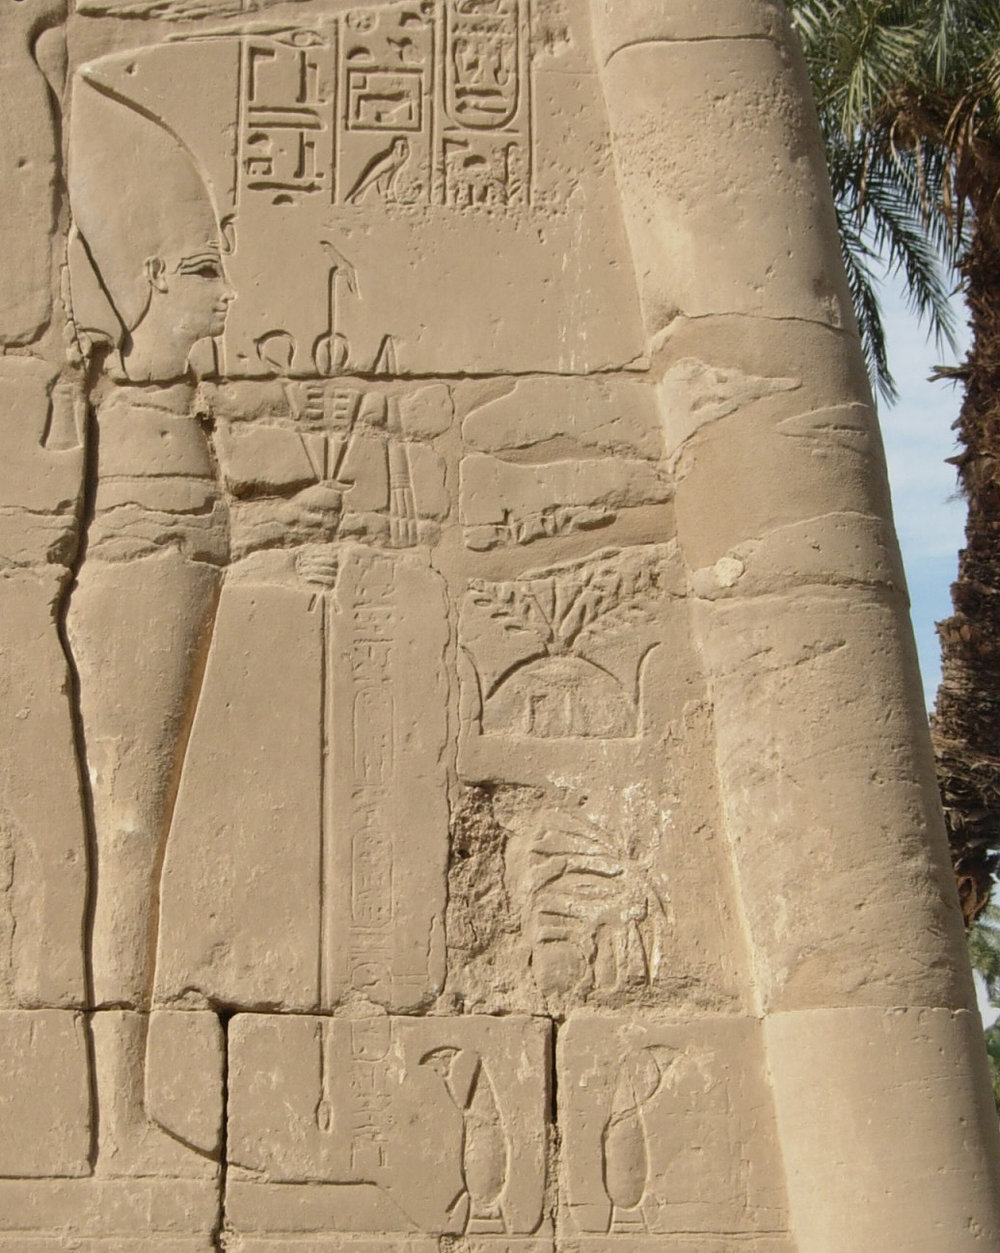 Late Period relief of Osiris, NE Karnak girdle wall showing ideogram of his tomb near center.